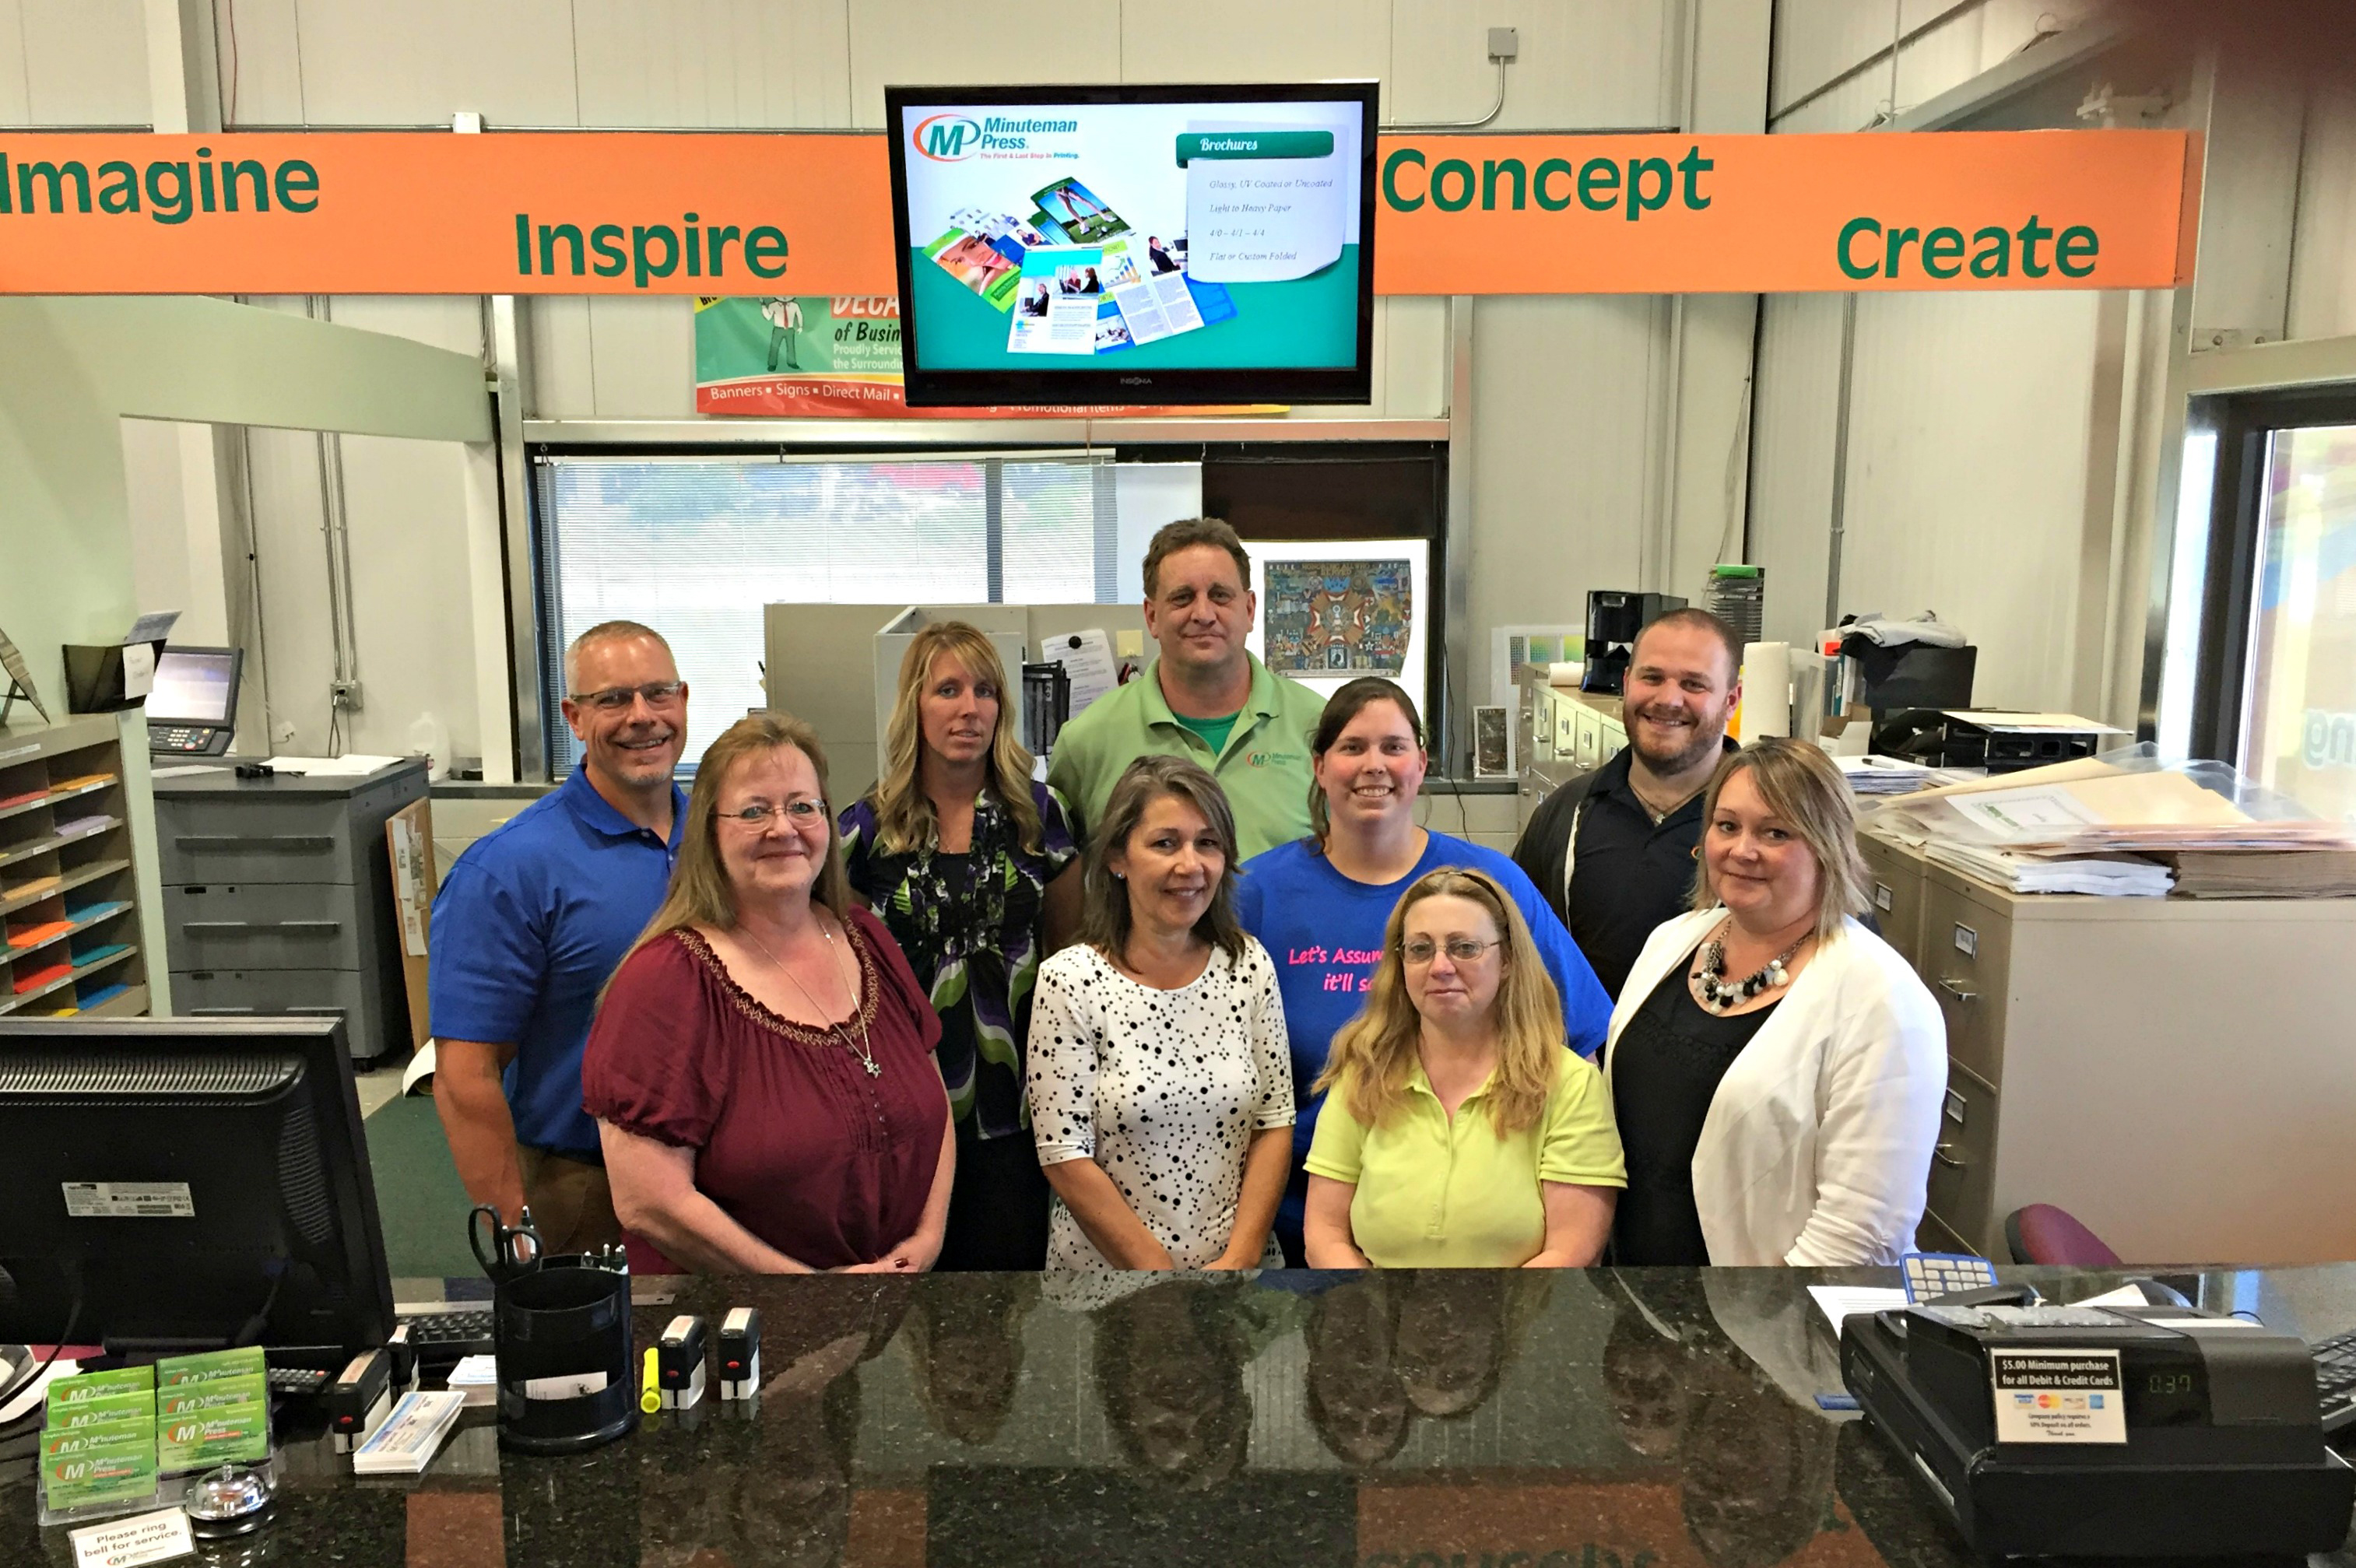 Meet Jim Little (left) and the staff of Minuteman Press, Burlington, Wisconsin. http://www.minutemanpressfranchise.com